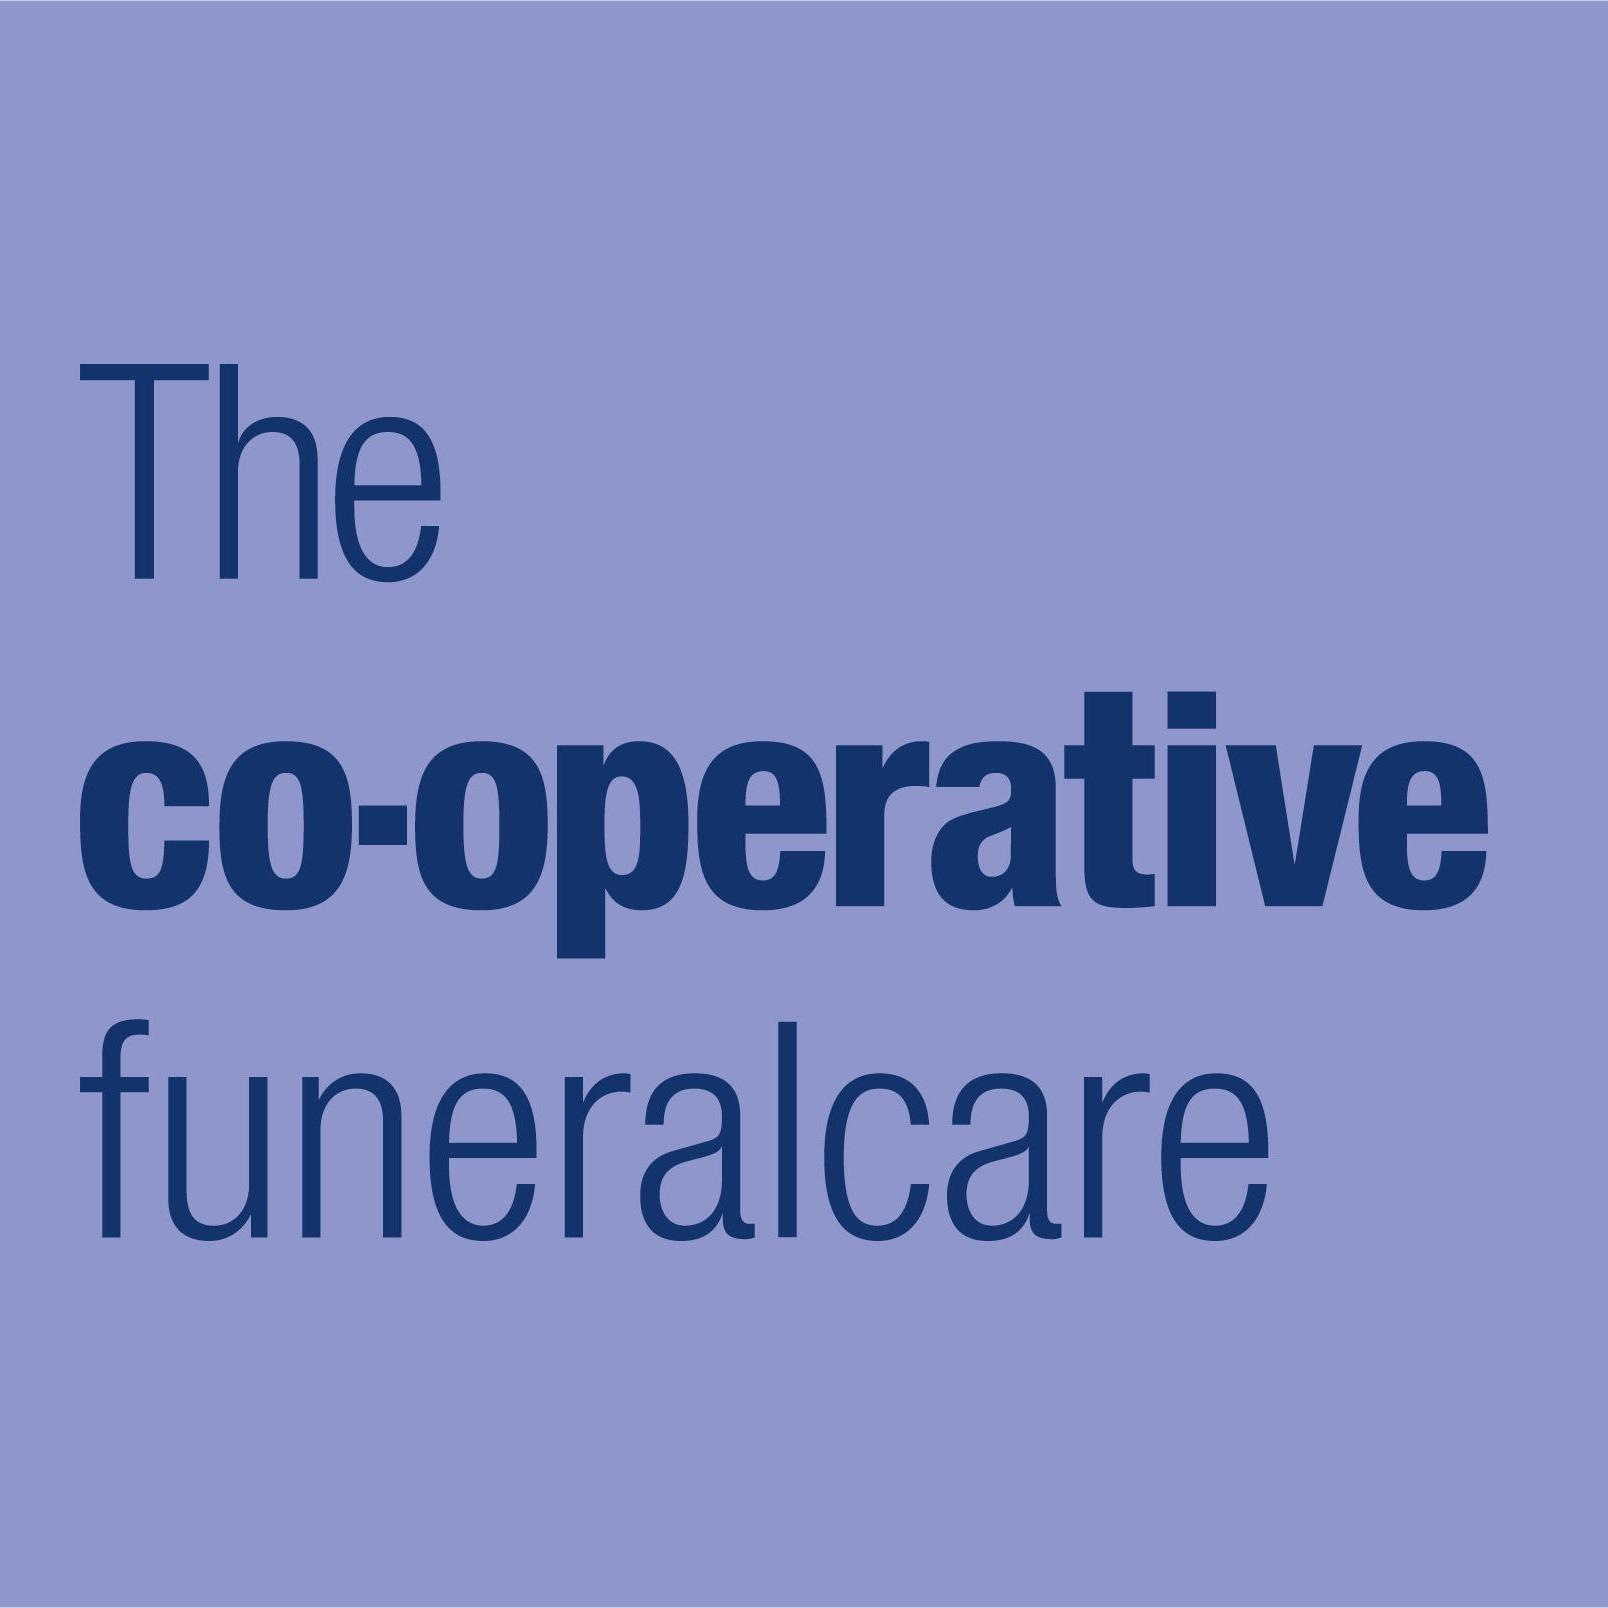 The Co-operative Funeralcare - Minworth Logo